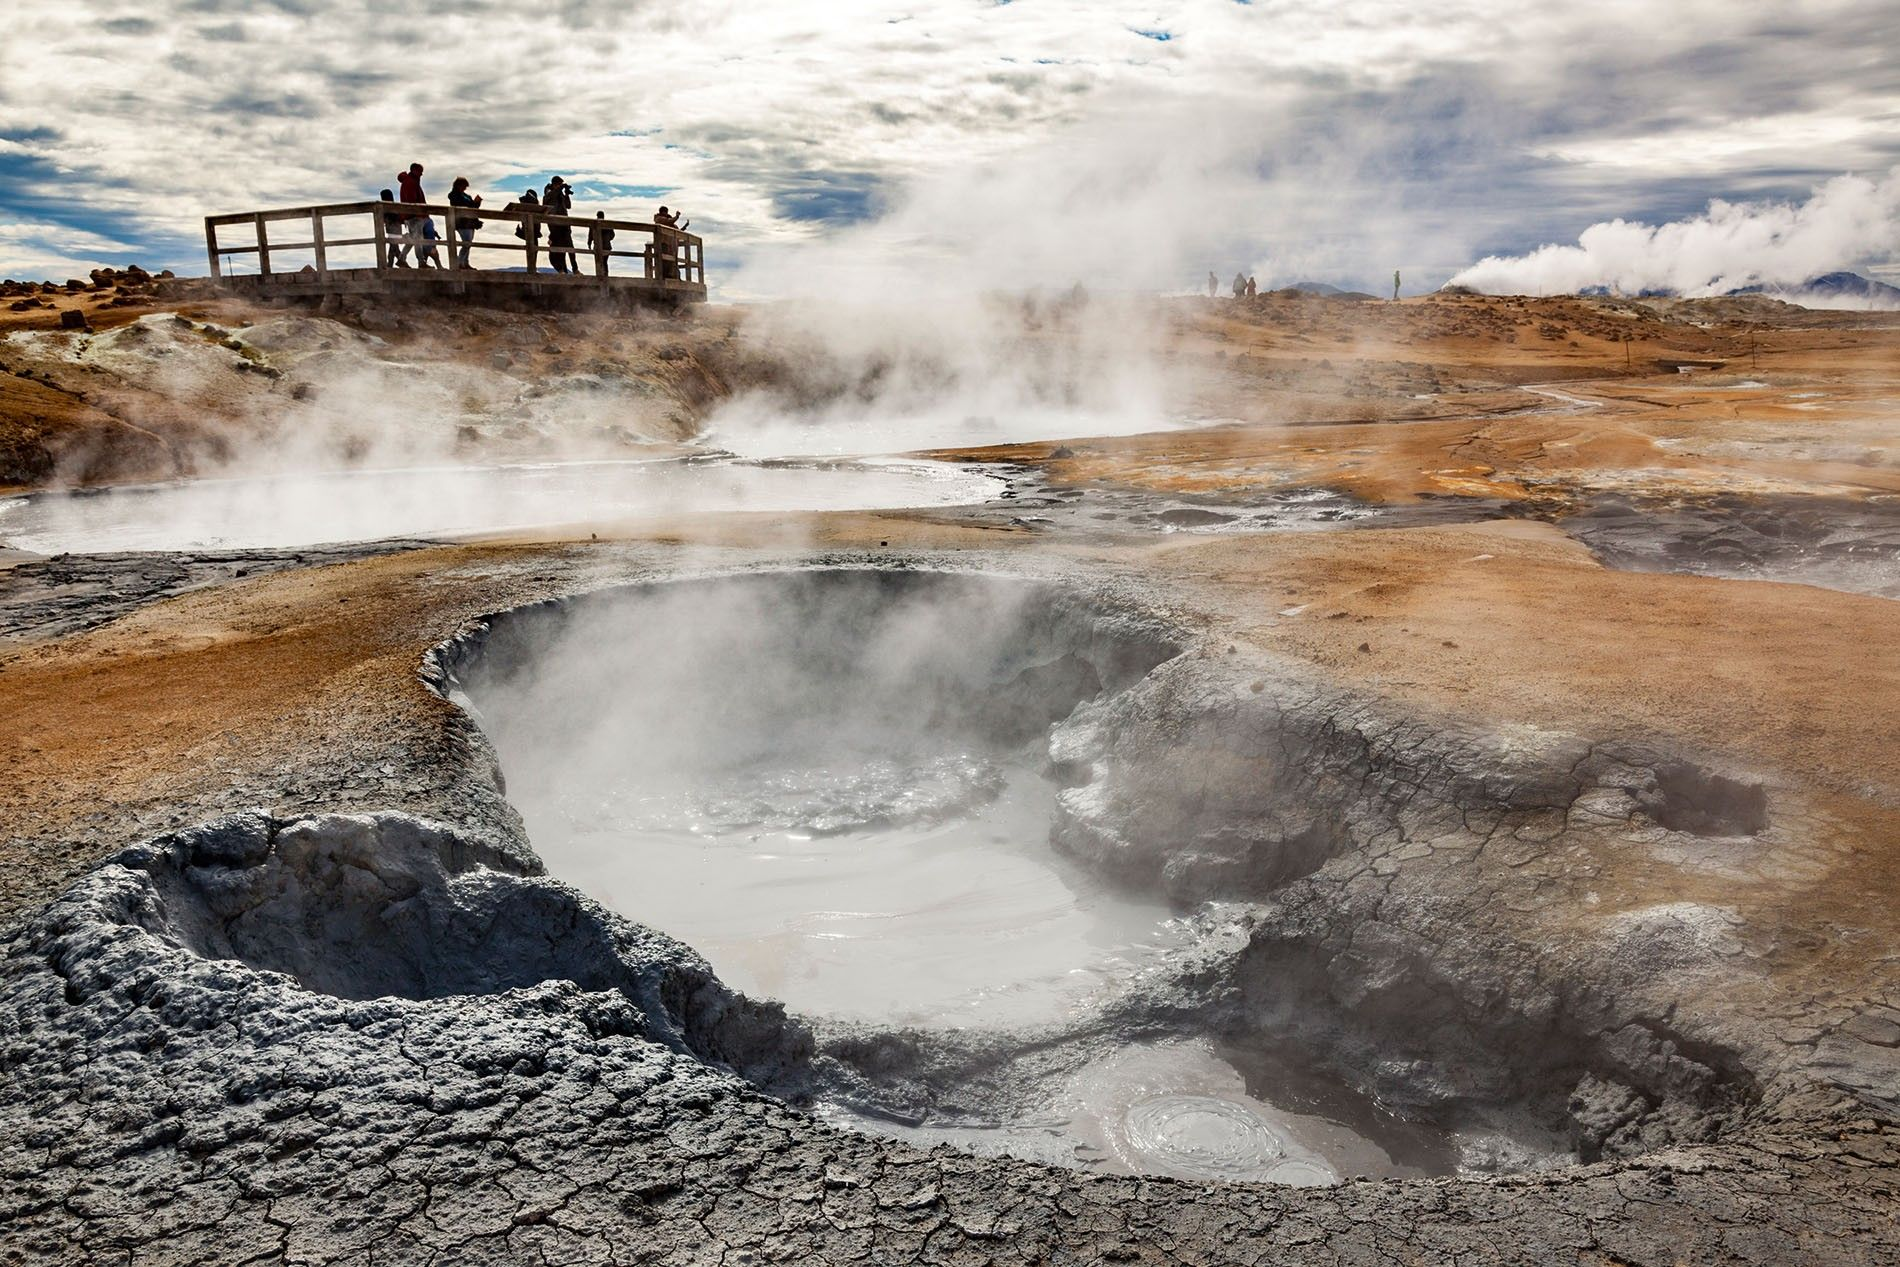 Lake Mývatn's shores are home to show-stopping geology, including the Hverfjall volcanic crater, belching mudpots, sulphurous ...